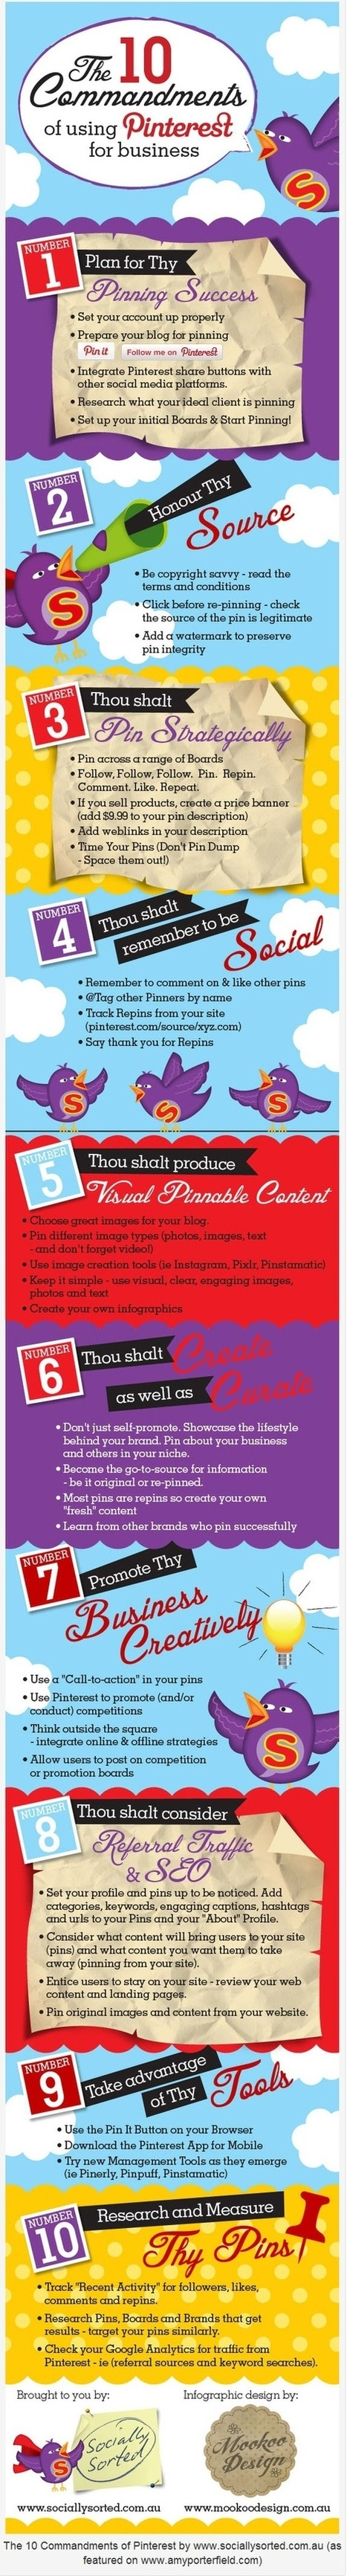 The 10 Commandments of using Pinterest for Business [Infographic] | Amazing Infographs | Scoop.it